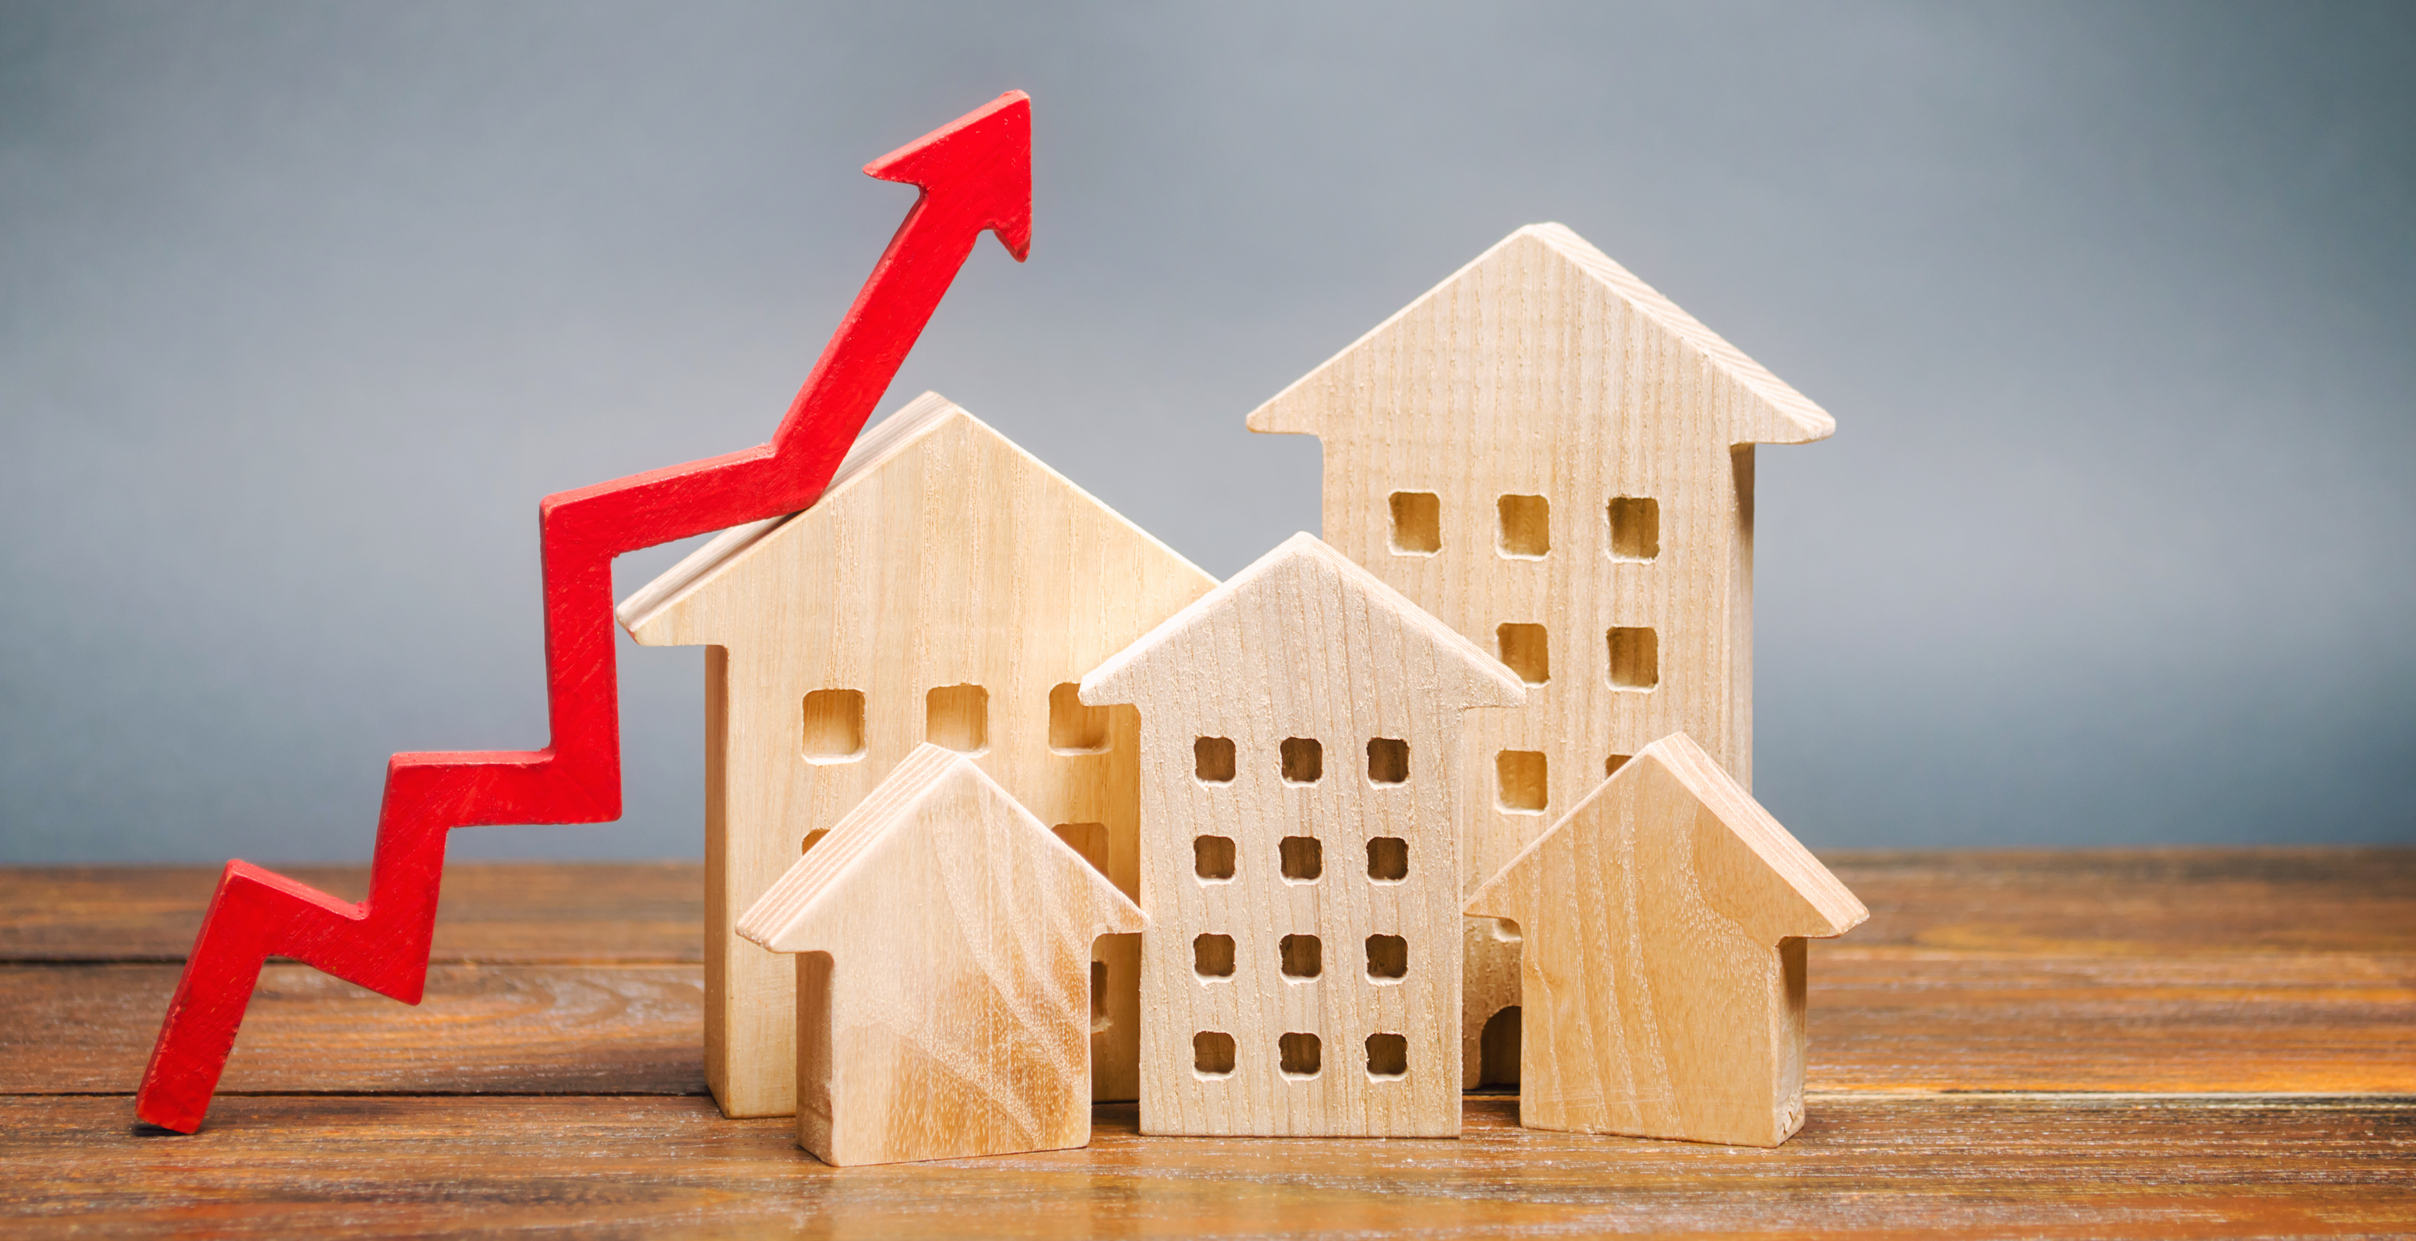 Miniature wooden houses with arrow sloping up to symbolize increasing home sales